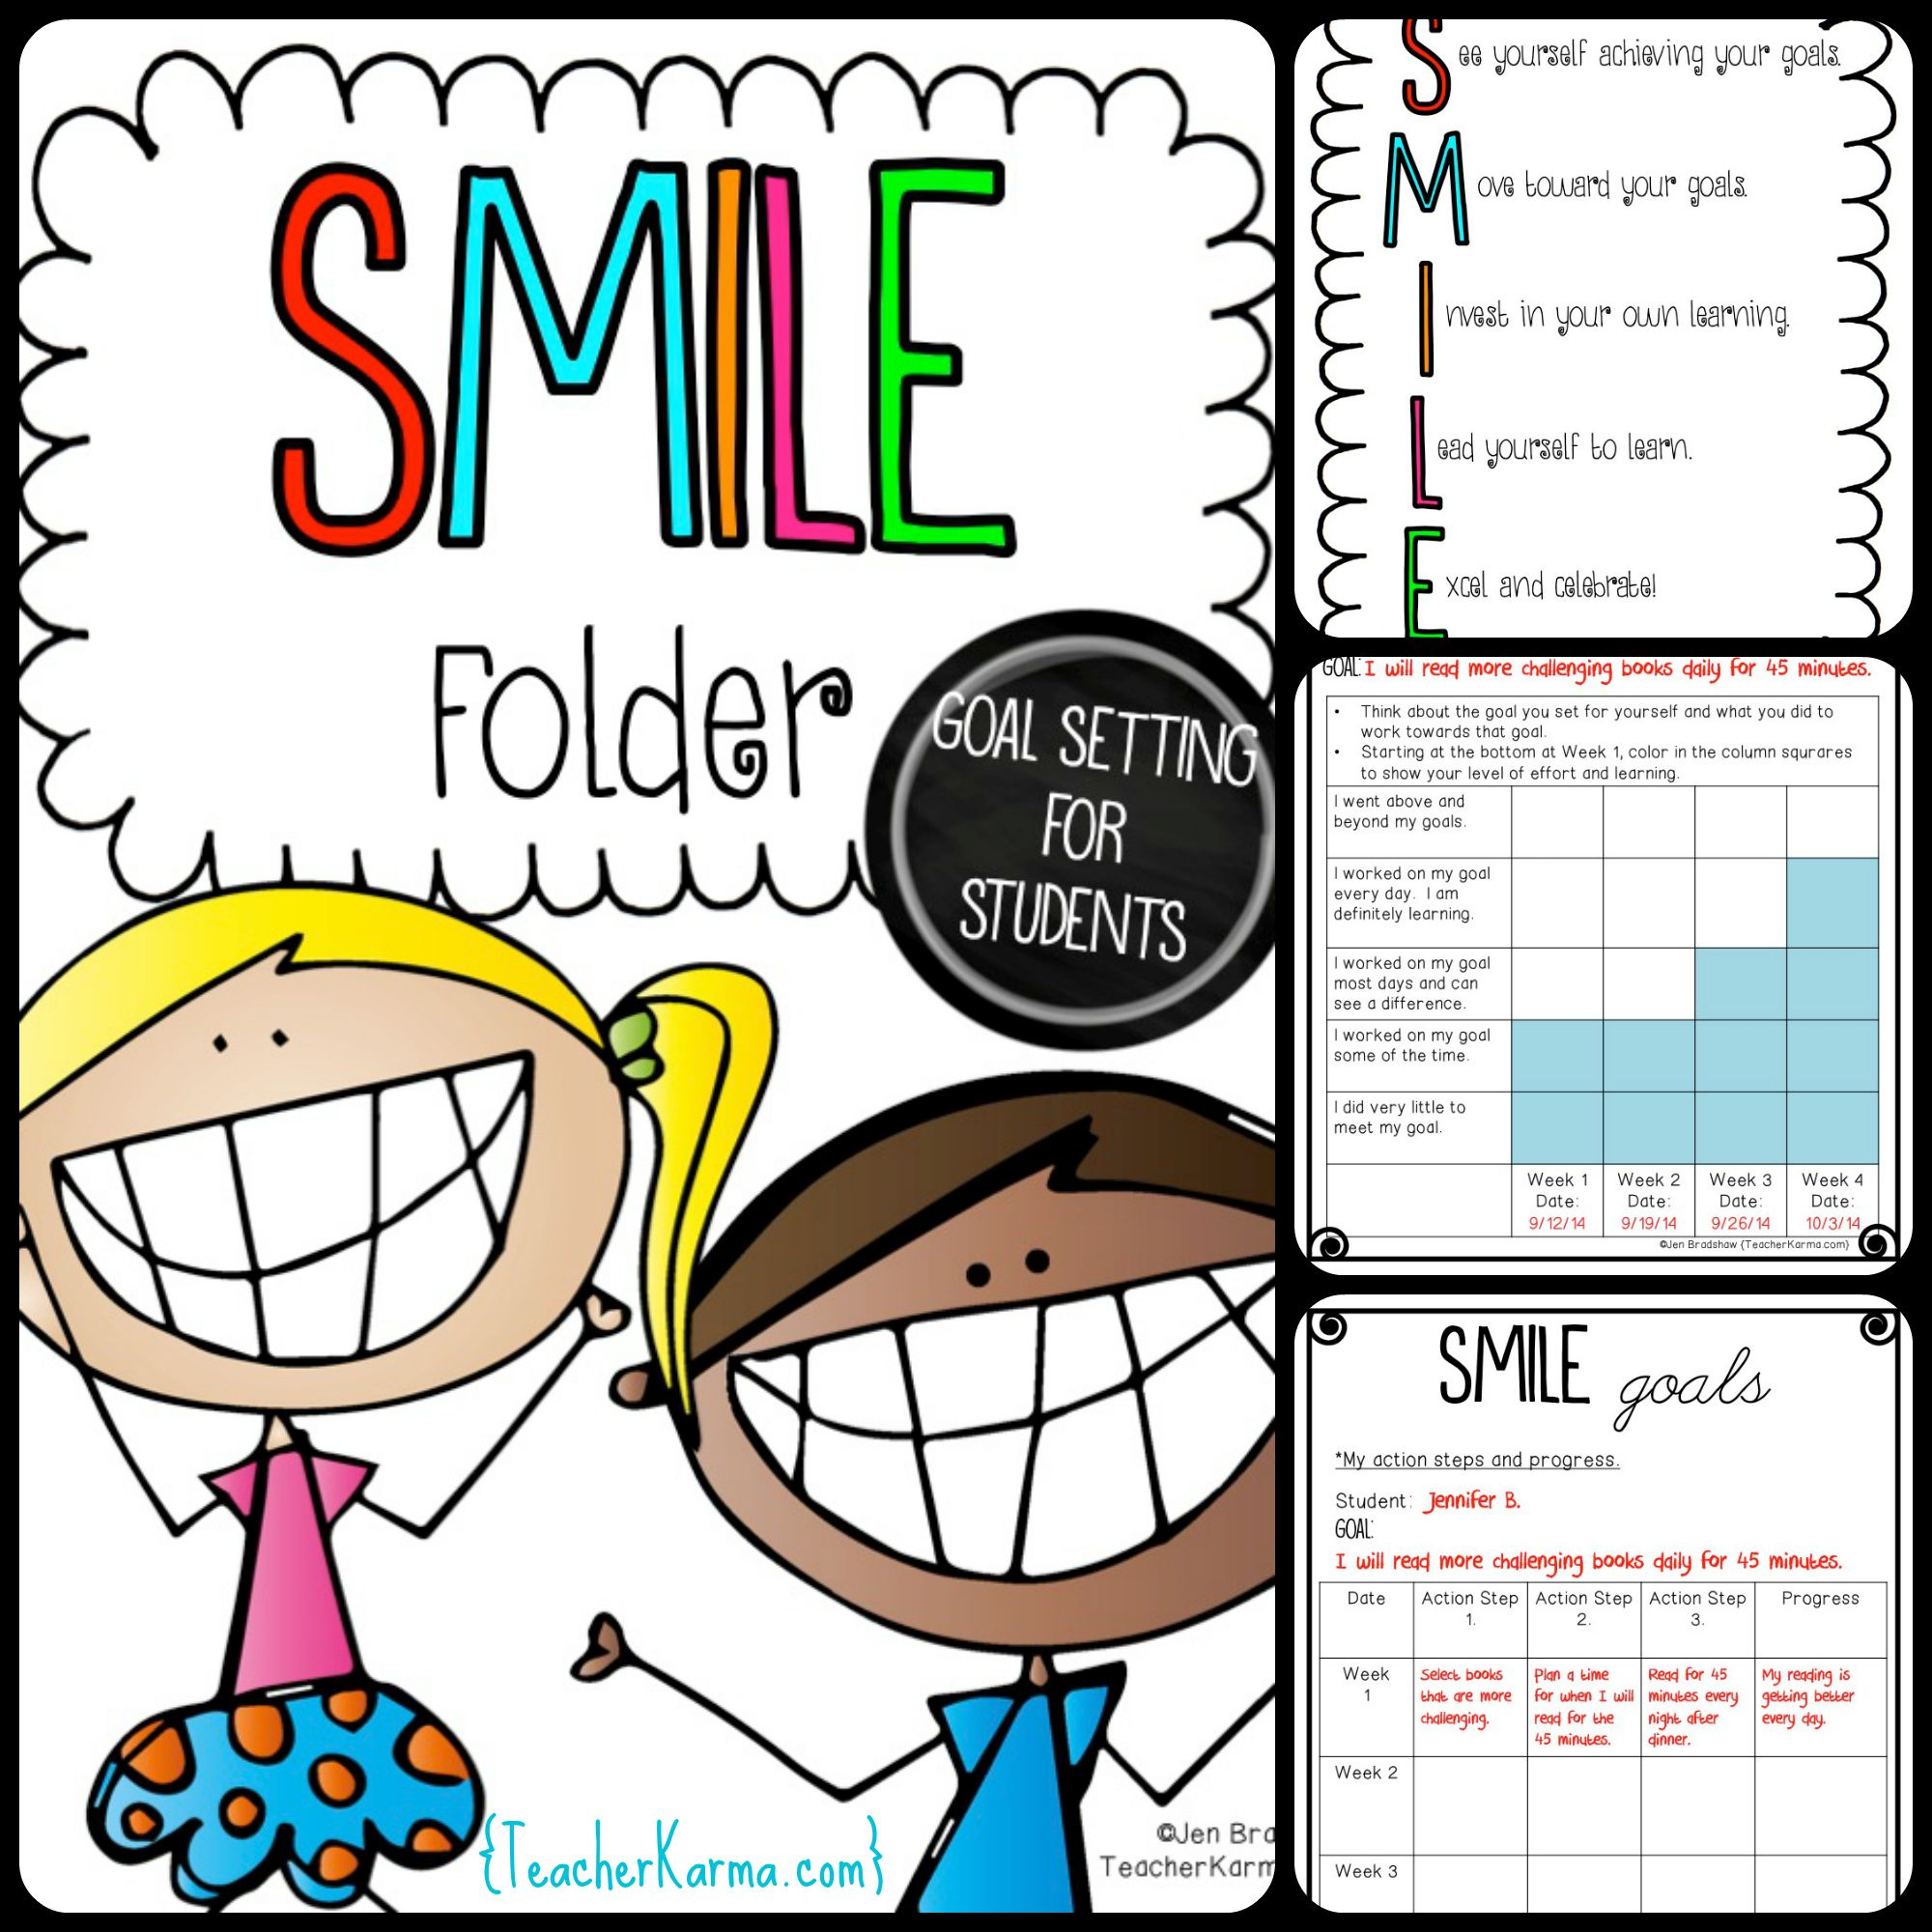 Action Folder Van Deze Week Setting Goals With Students Rti Smile Goals For Making